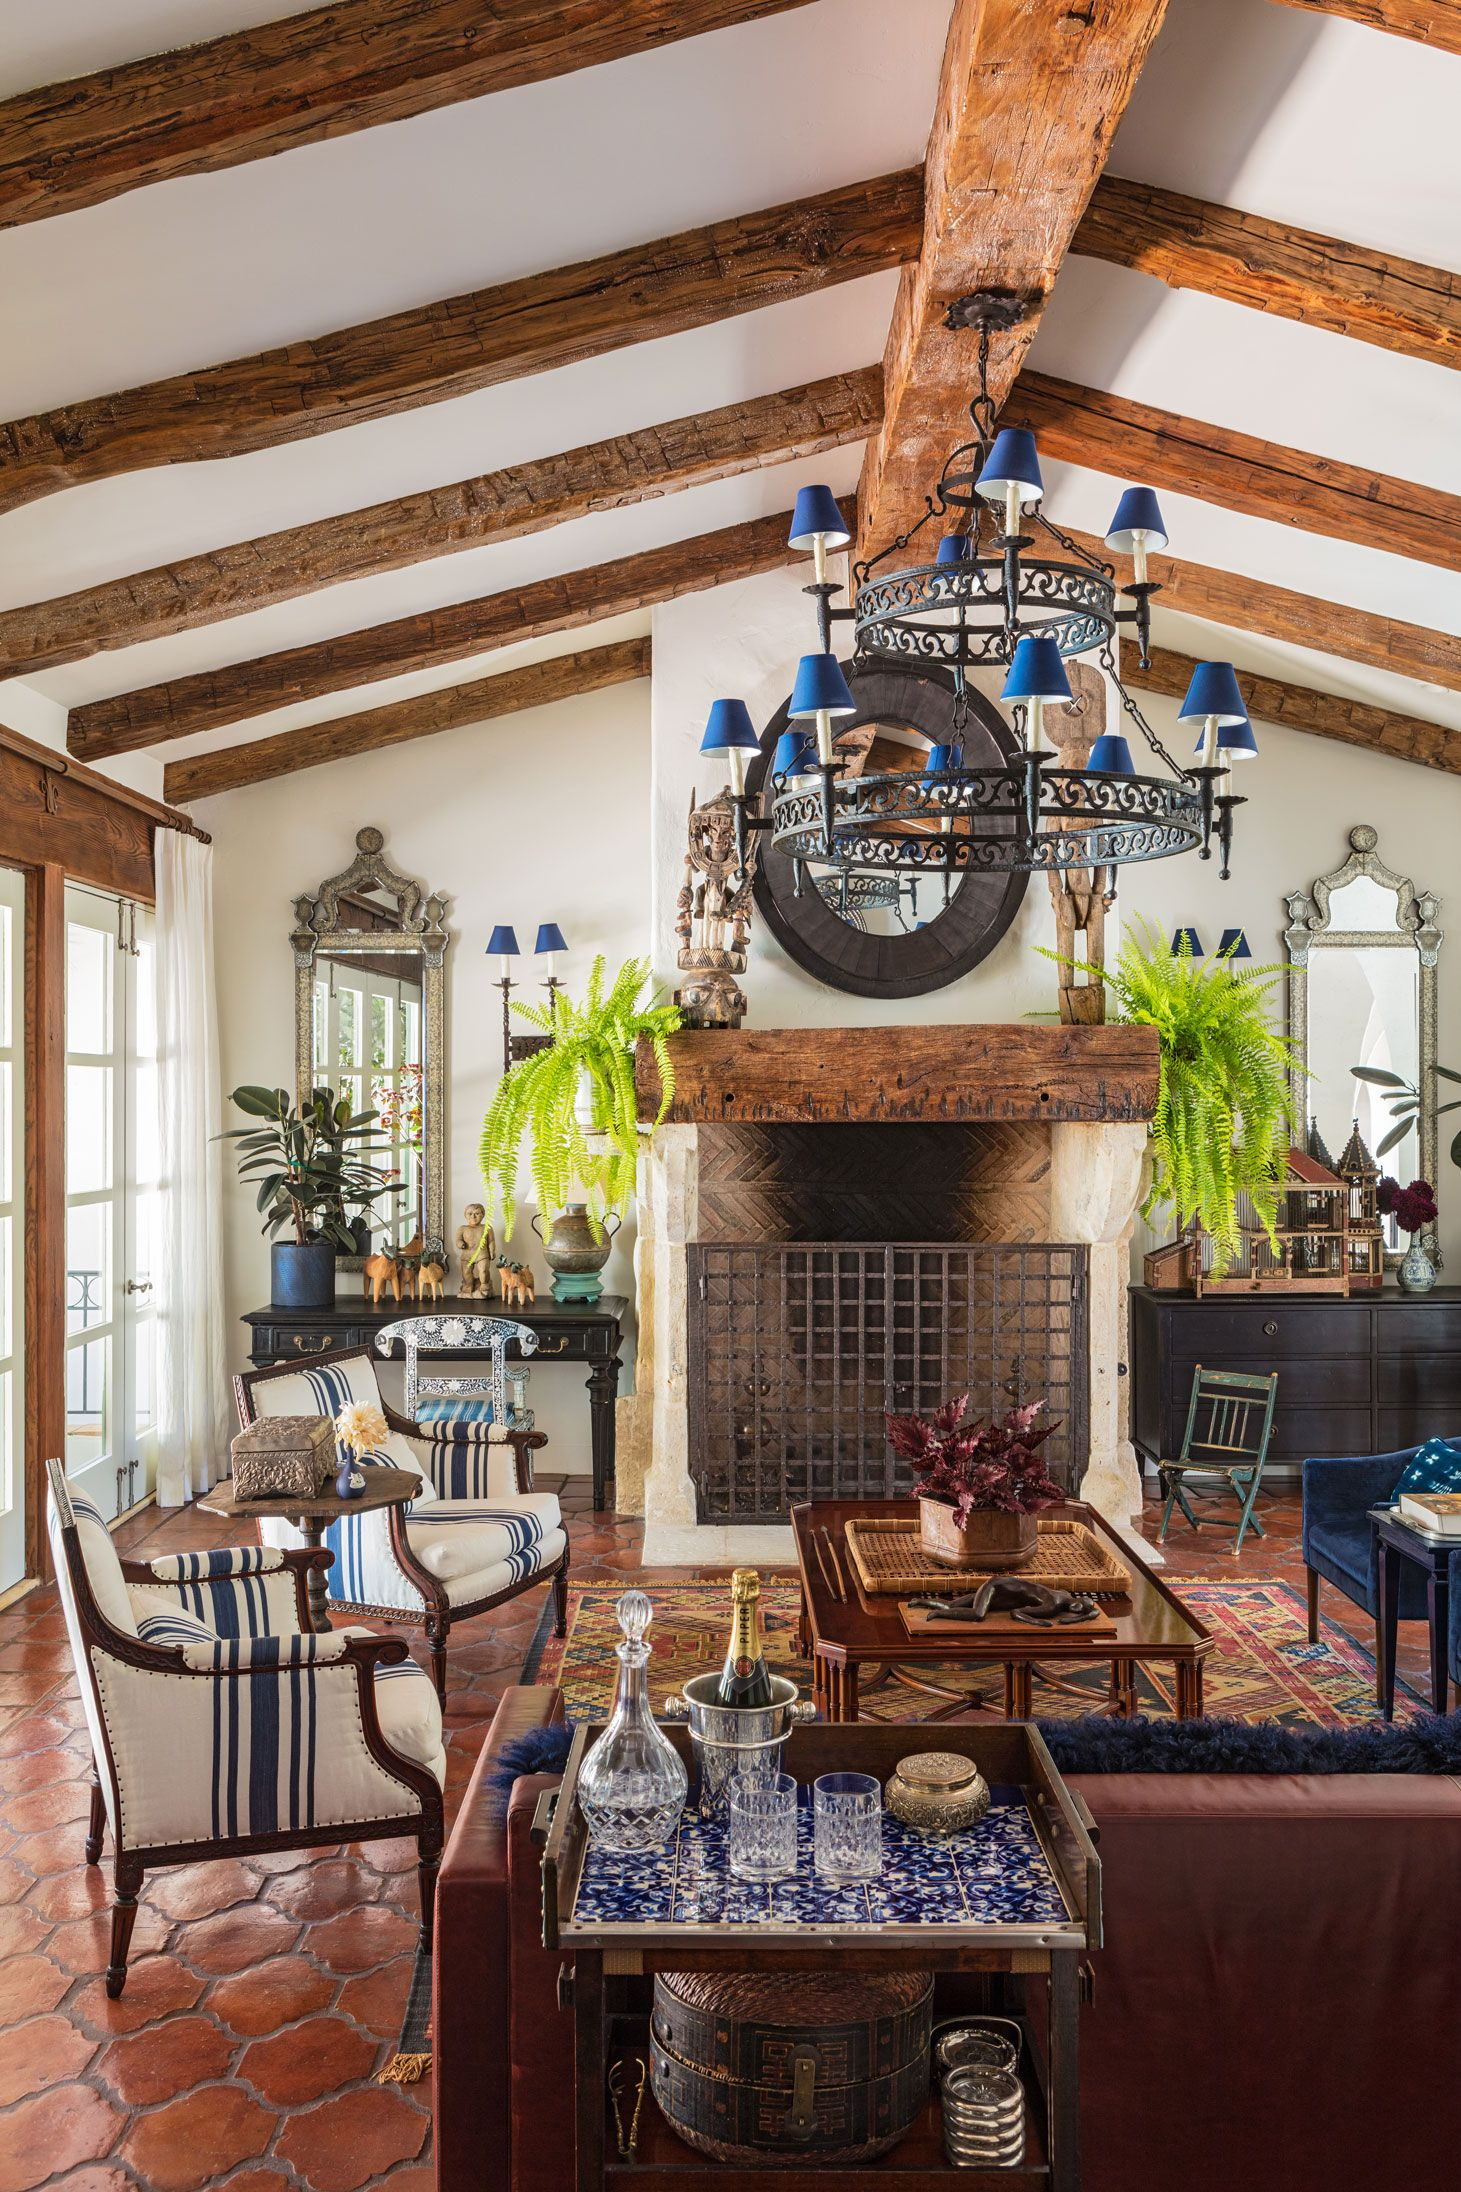 This California Home Is an Antique Lover's Dream